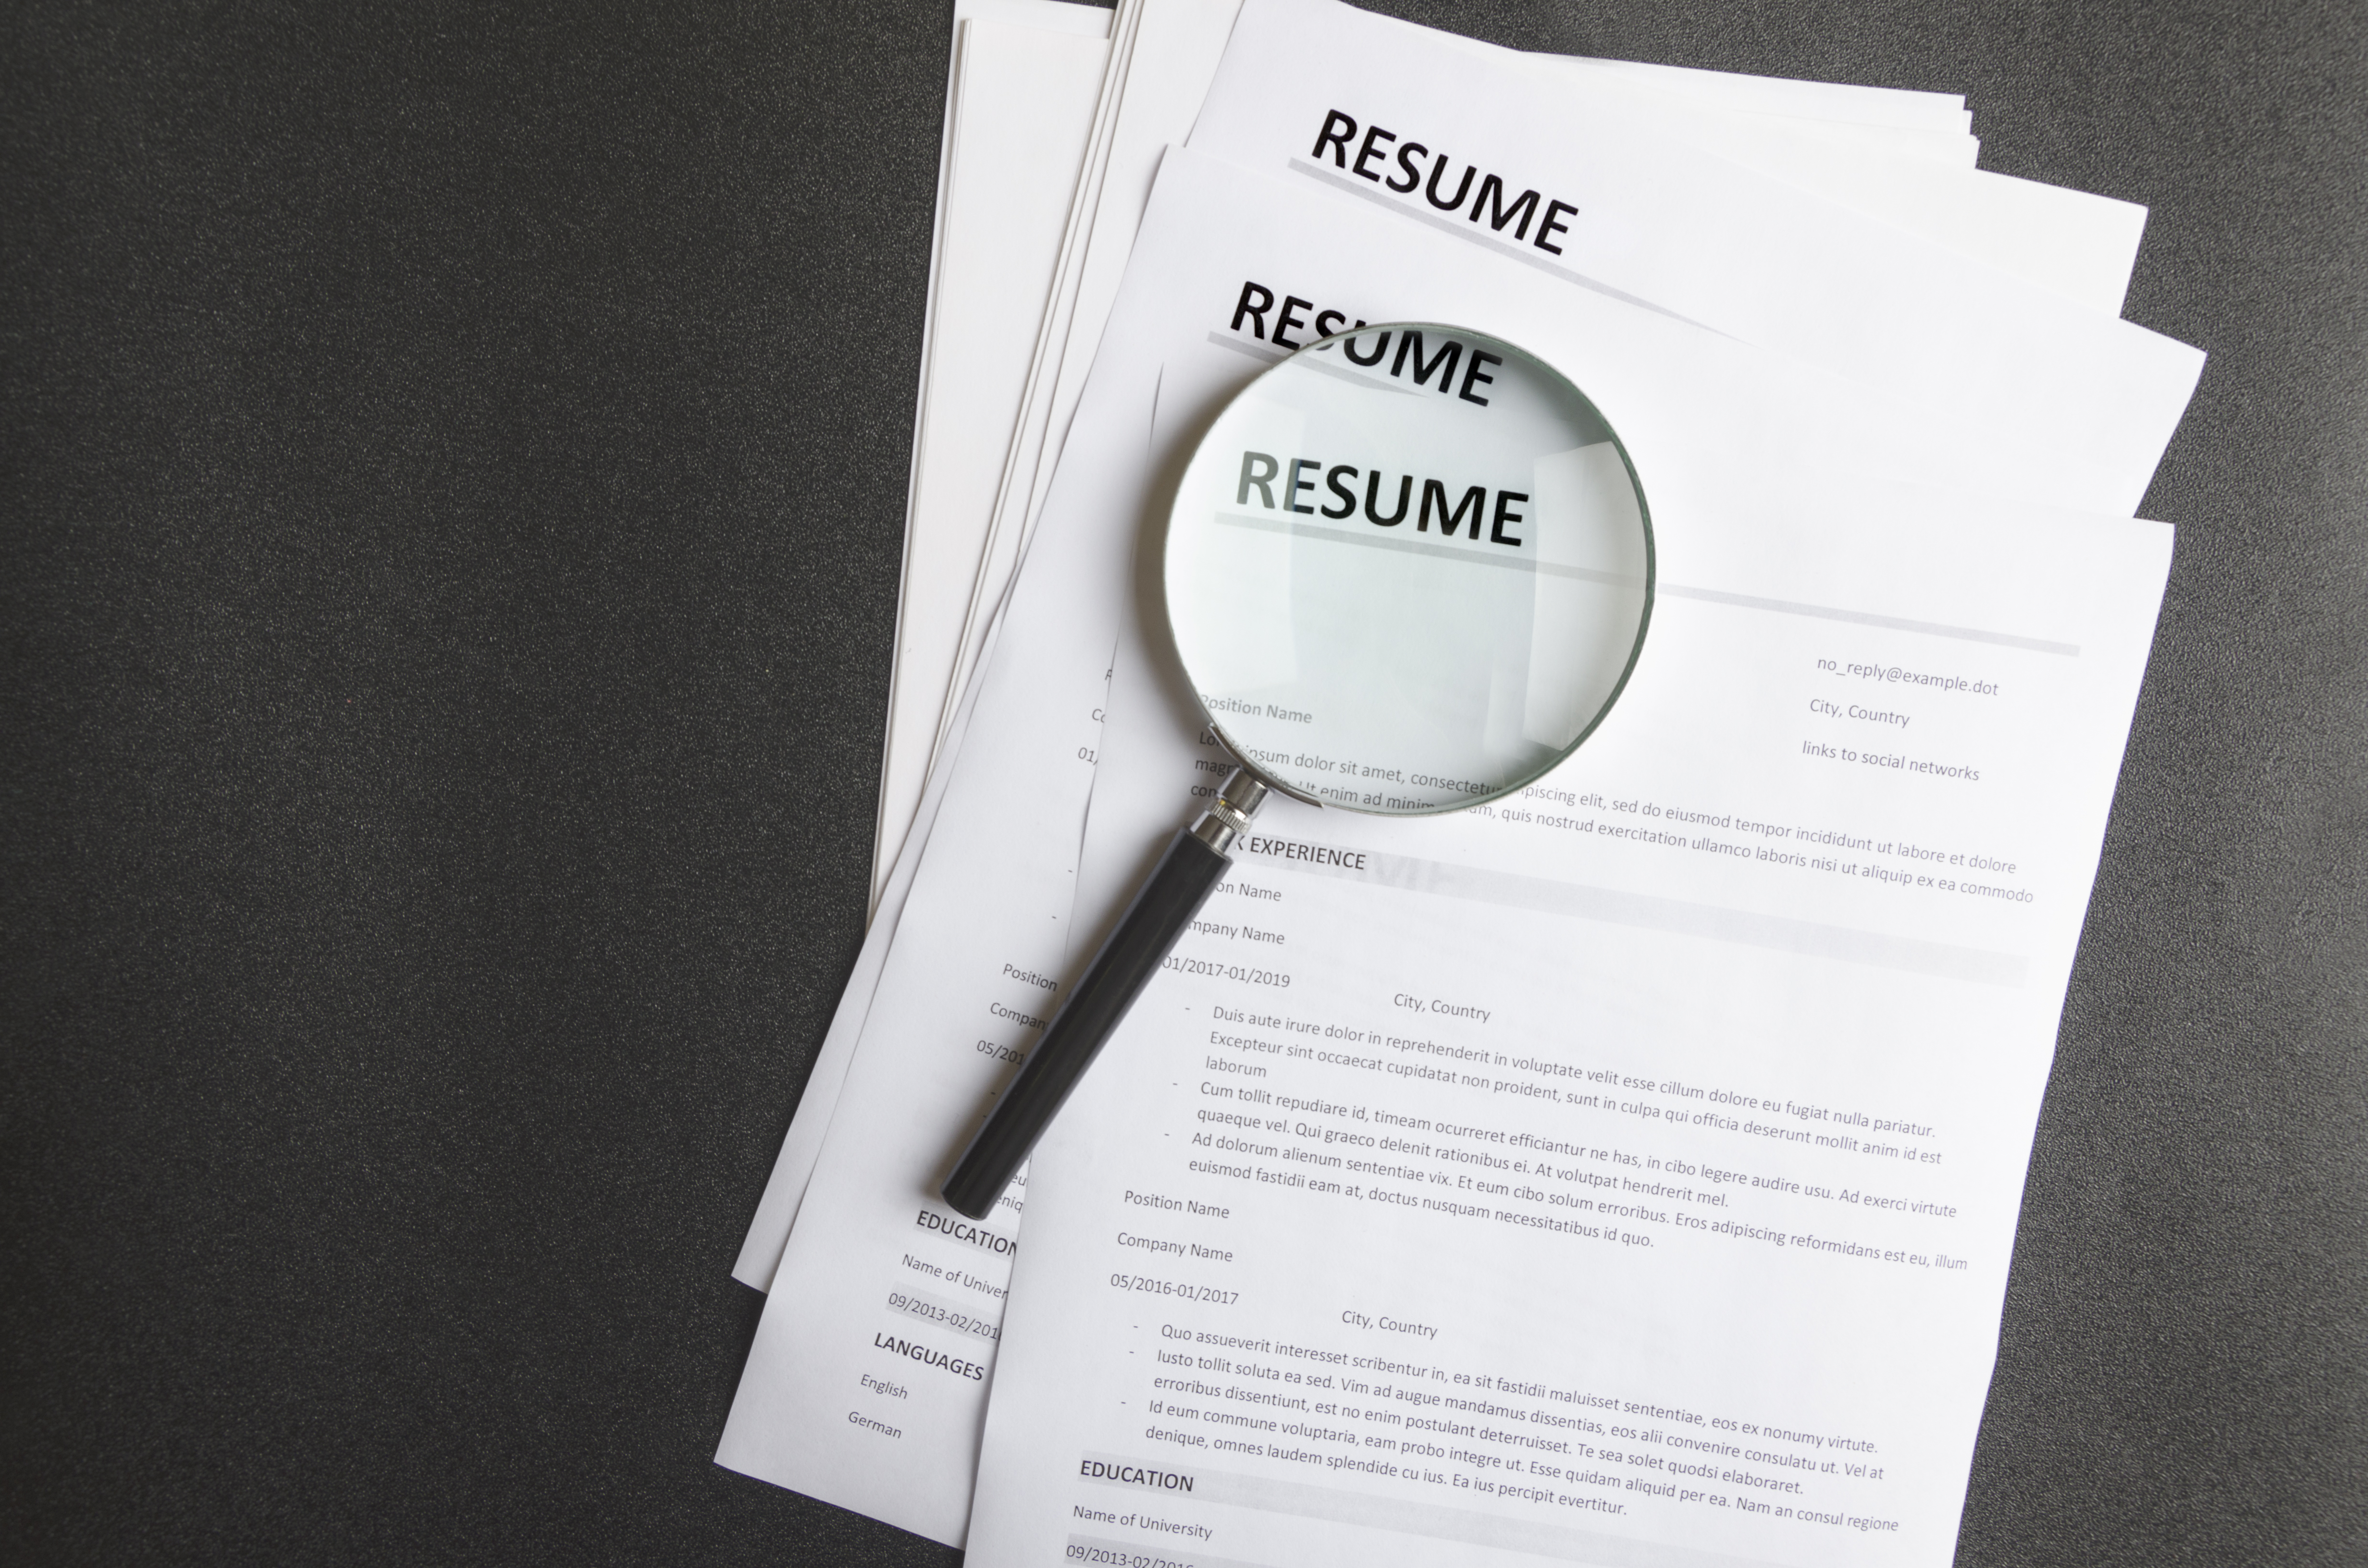 How to Build a Good Resume